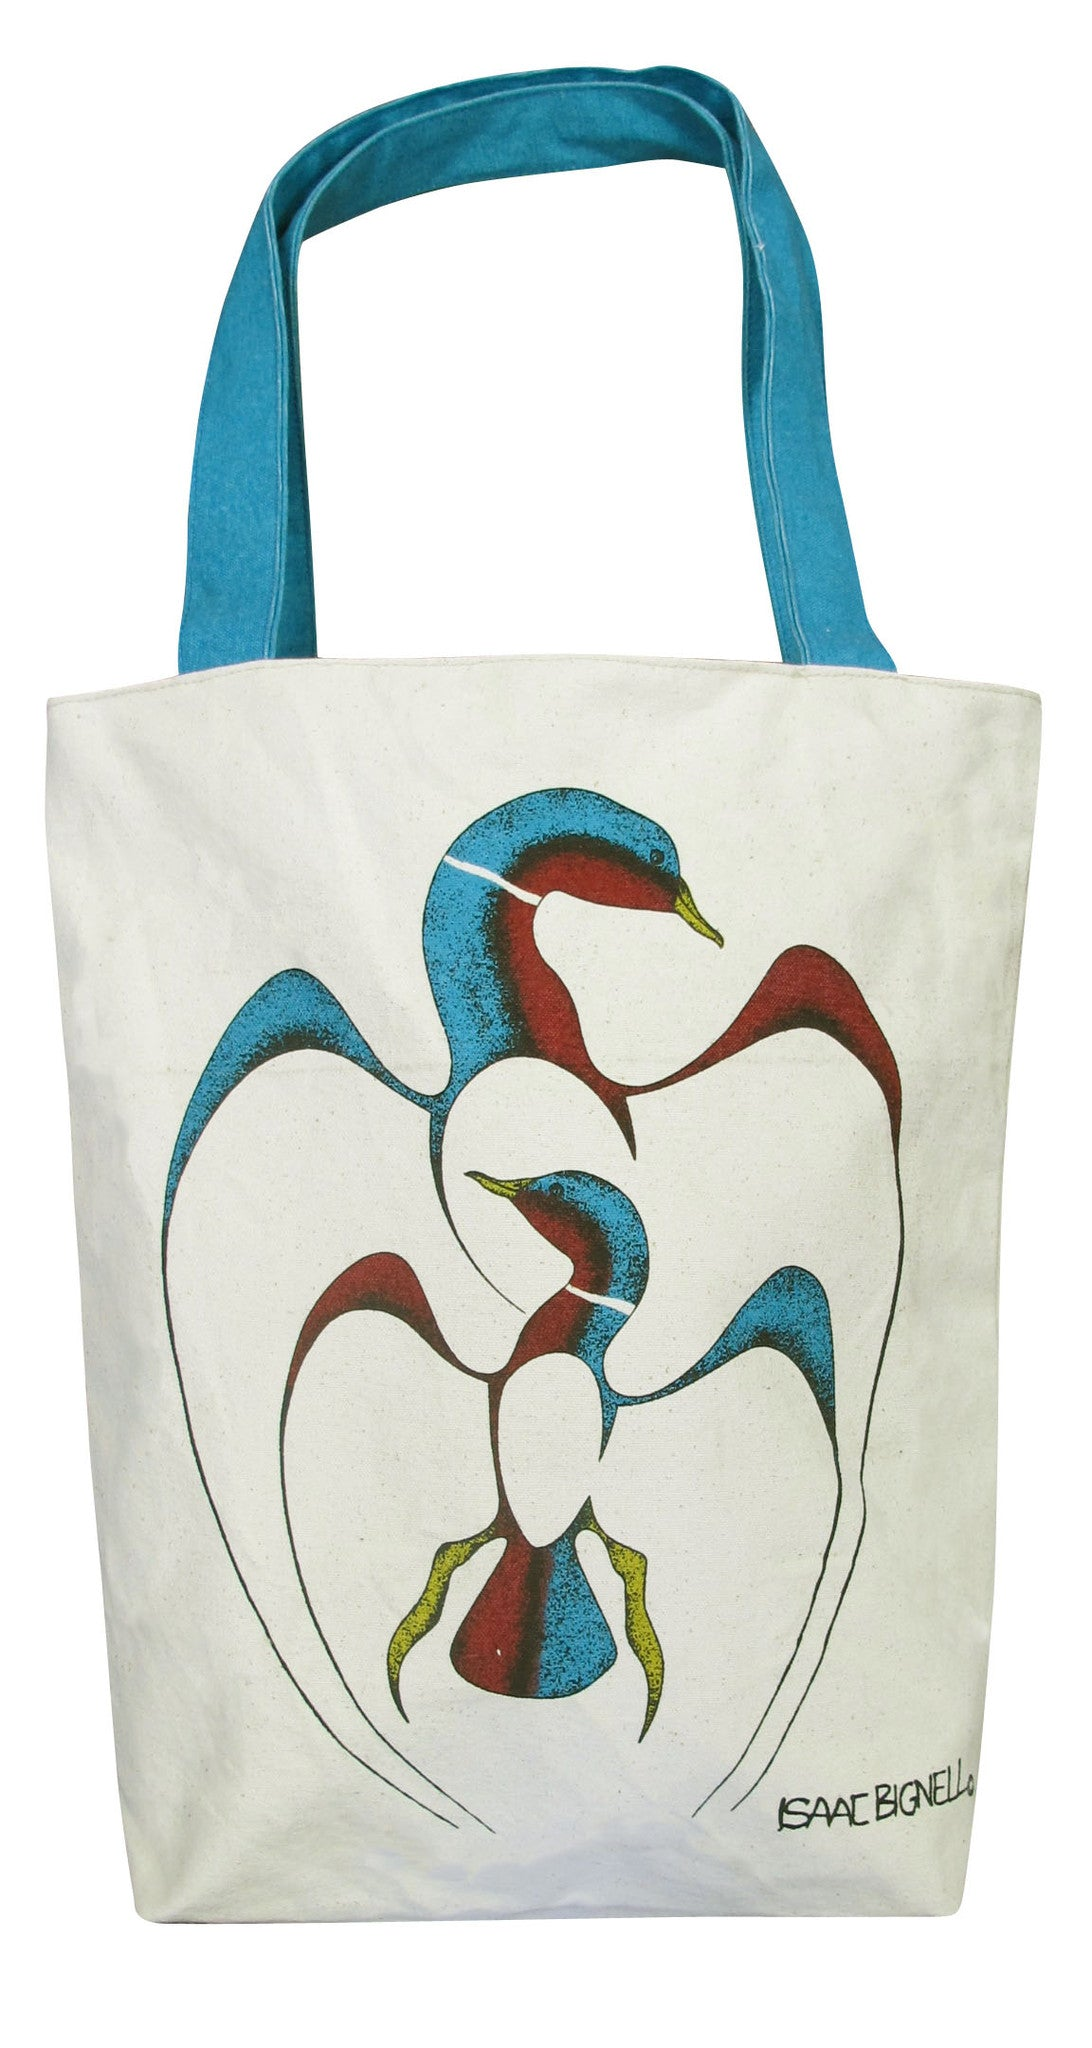 'Generations' Artist Collection Printed Eco-Bag - Oscardo